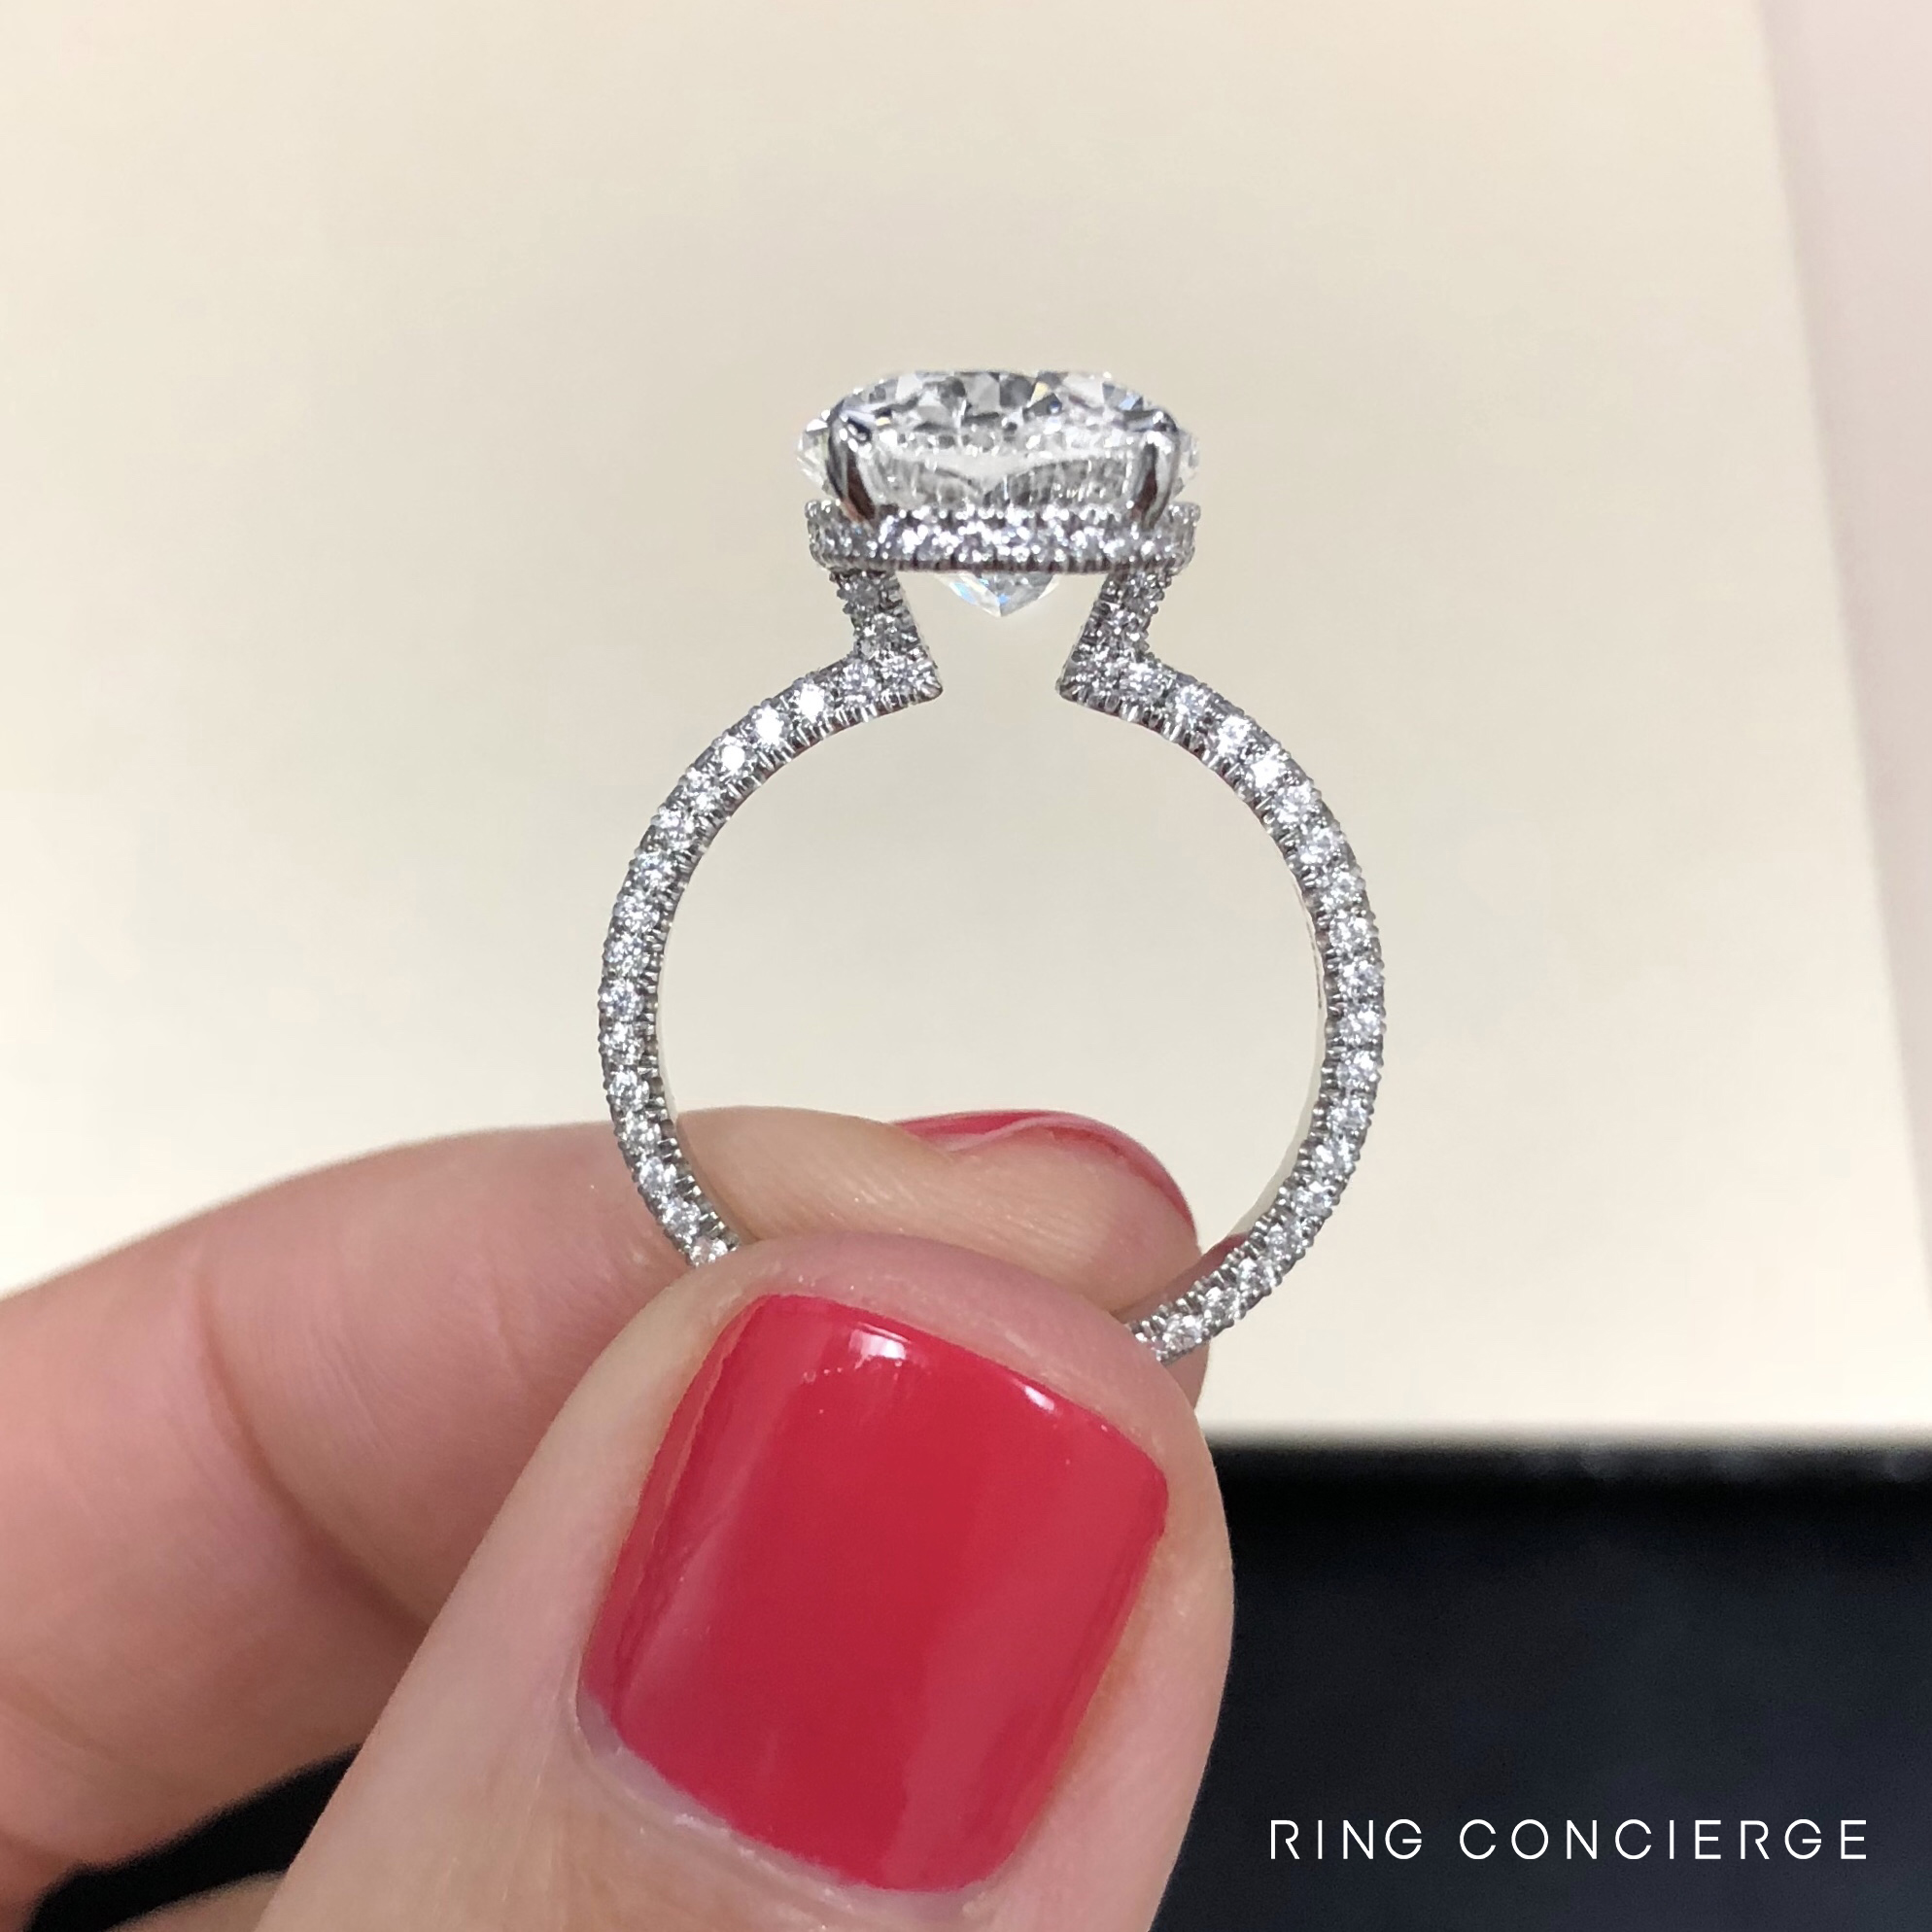 Exclusive Model Dev Windsor S Oval Engagement Ring Has A